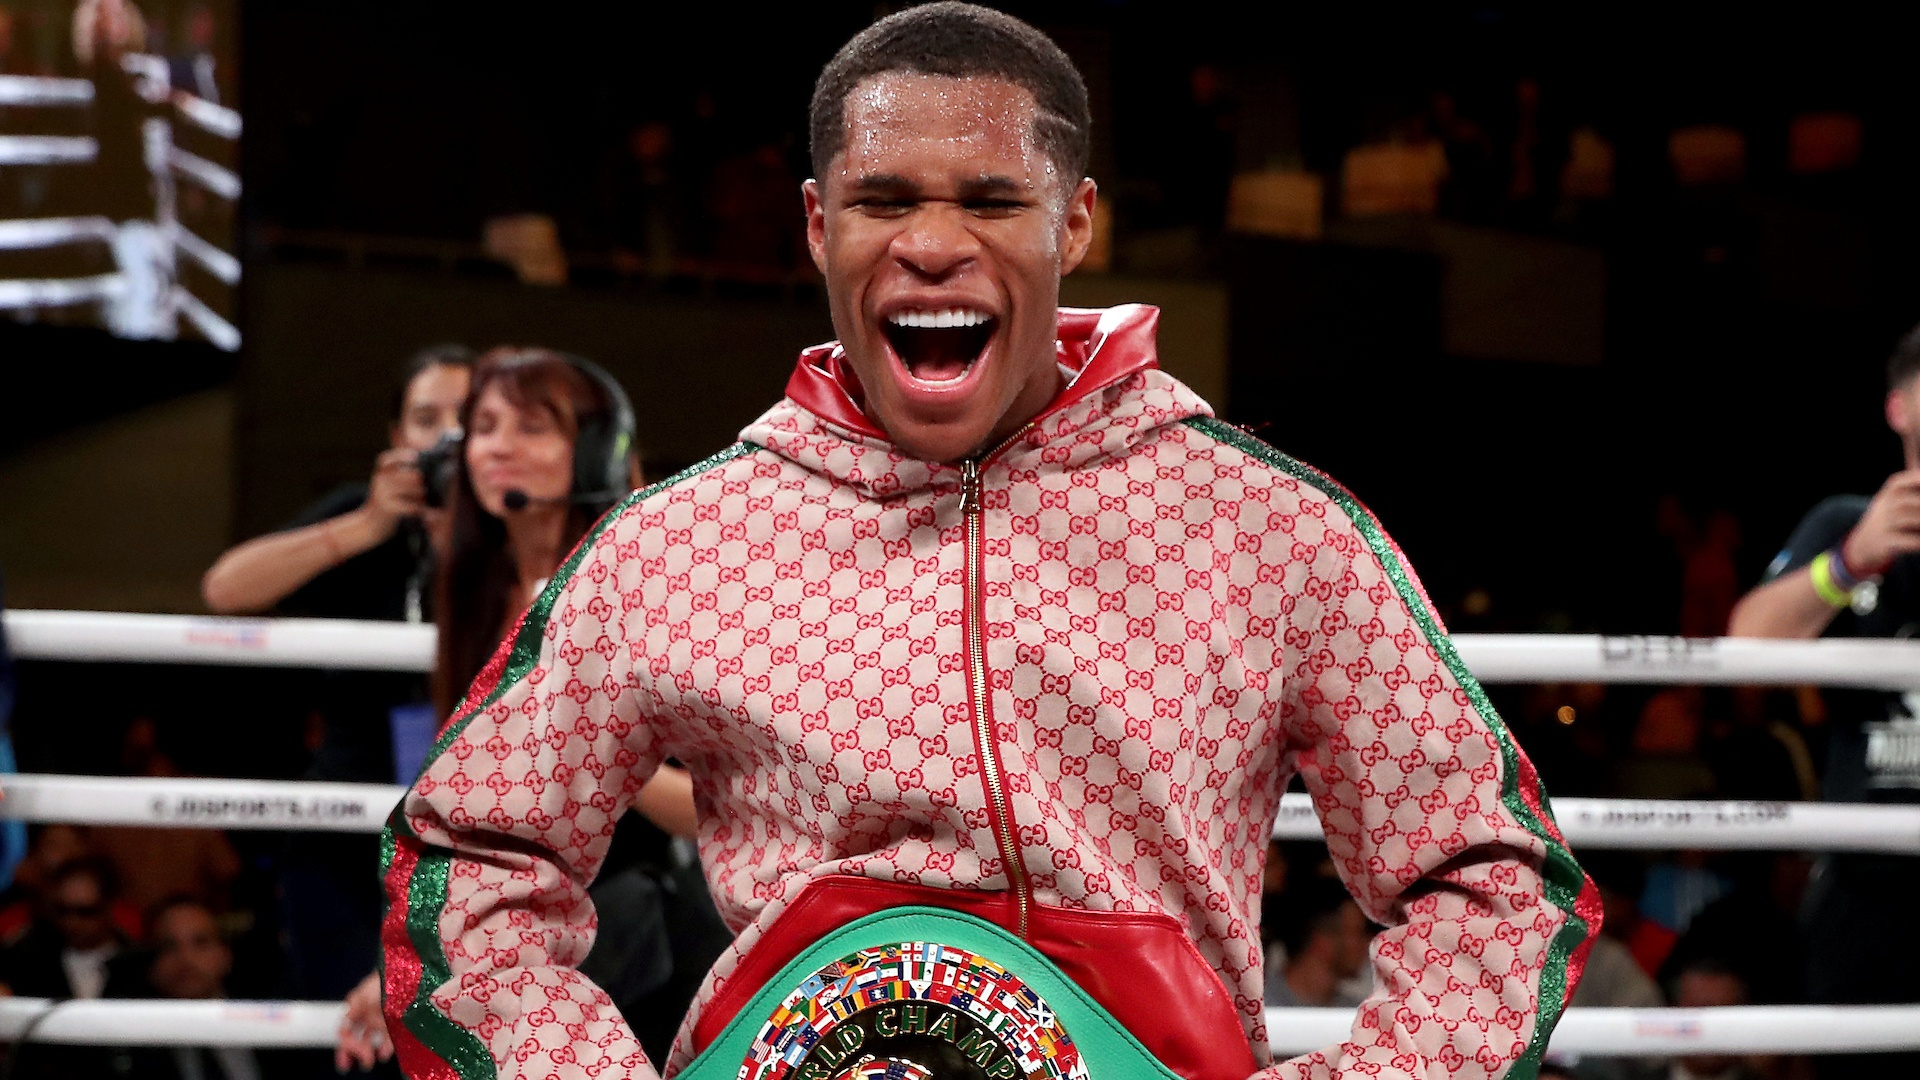 Haney - Devin Haney Wins One Sided Snooze Fest Against Yuriorkis Gamboa